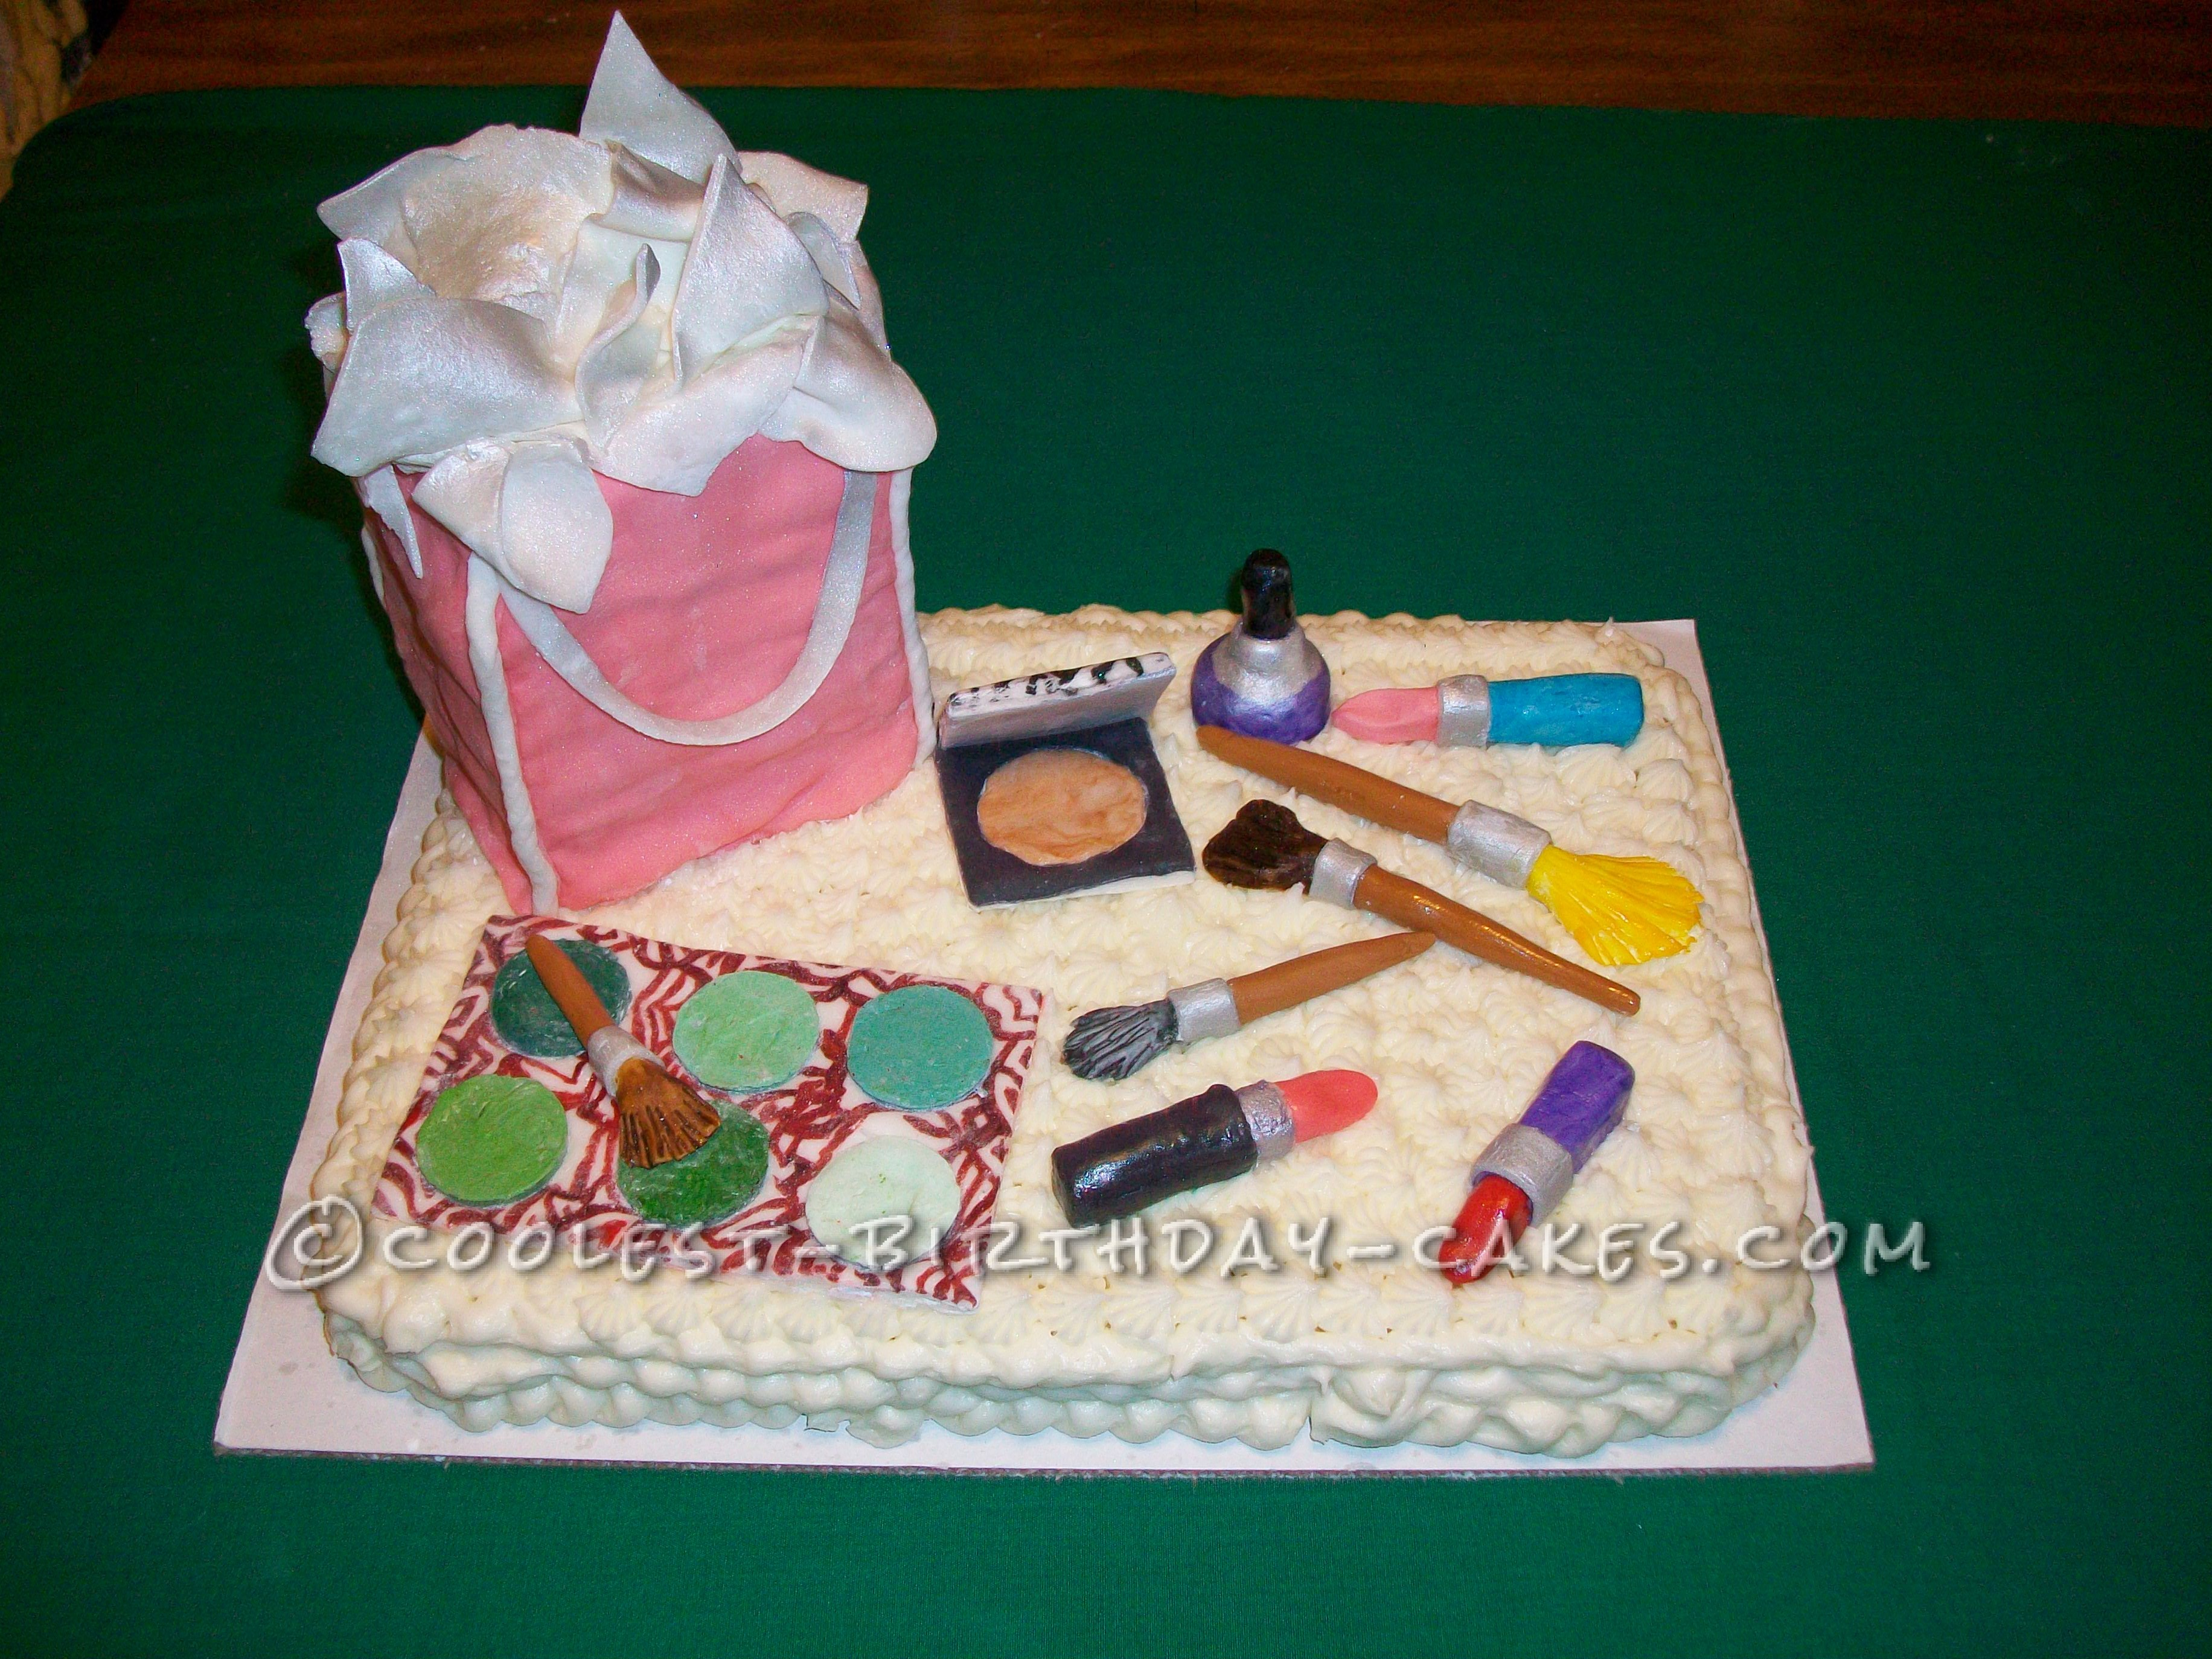 Coolest Make Up Cake For 13 Year Old Girl